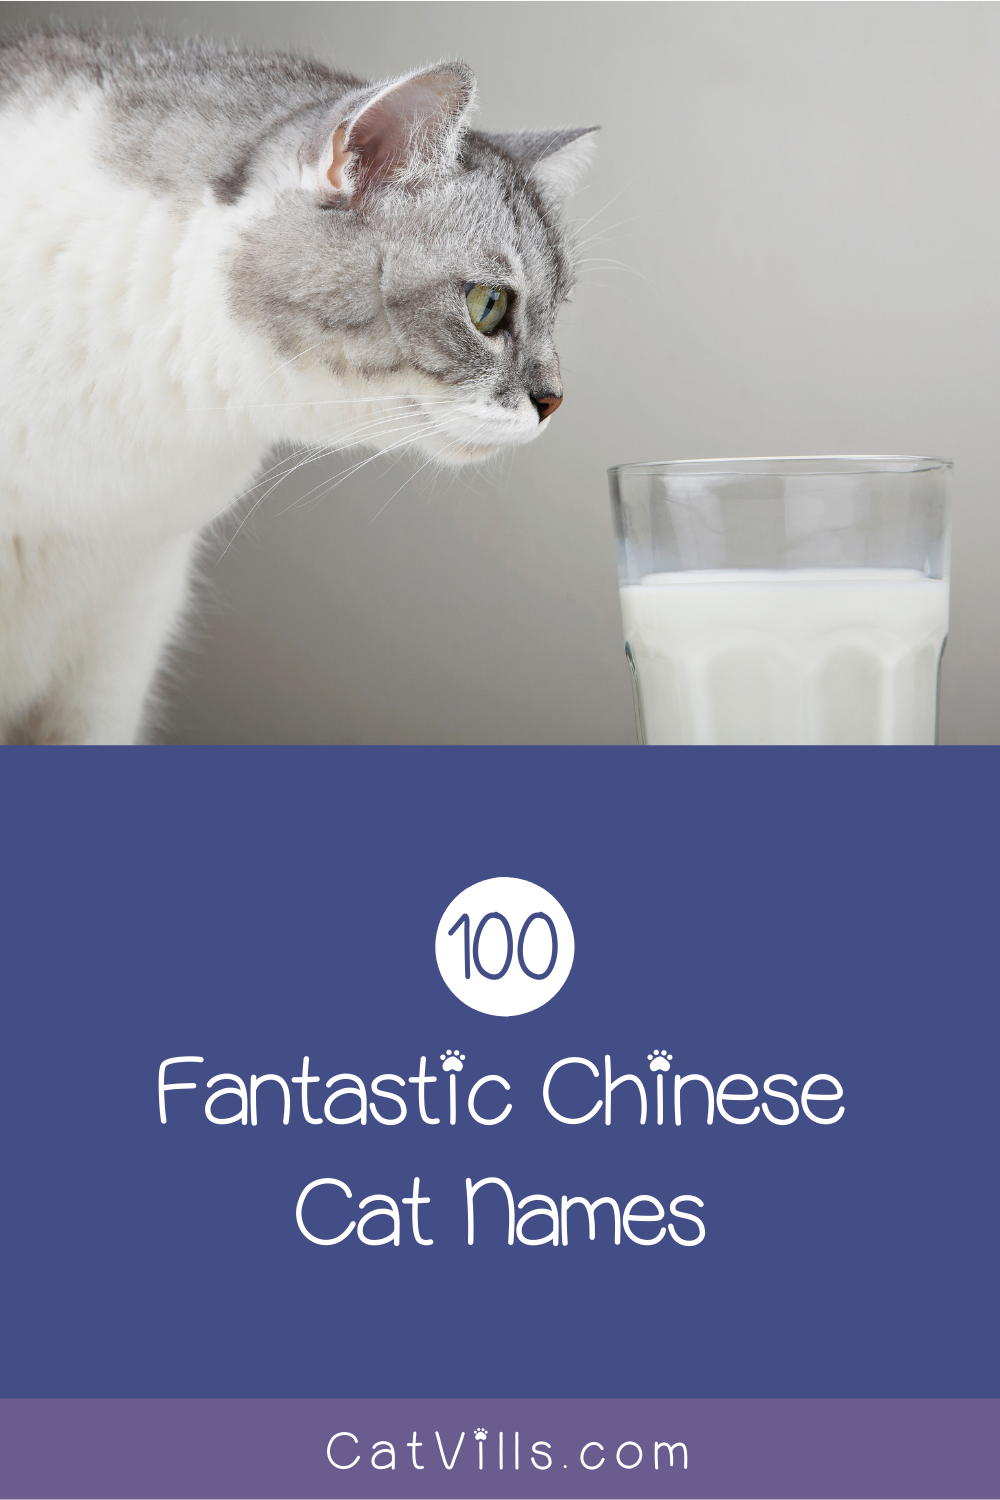 100 Exceptional Chinese Cat Names For Your New Kitten Catvills In 2020 Cat Names Kitten Names Cute Cats And Kittens